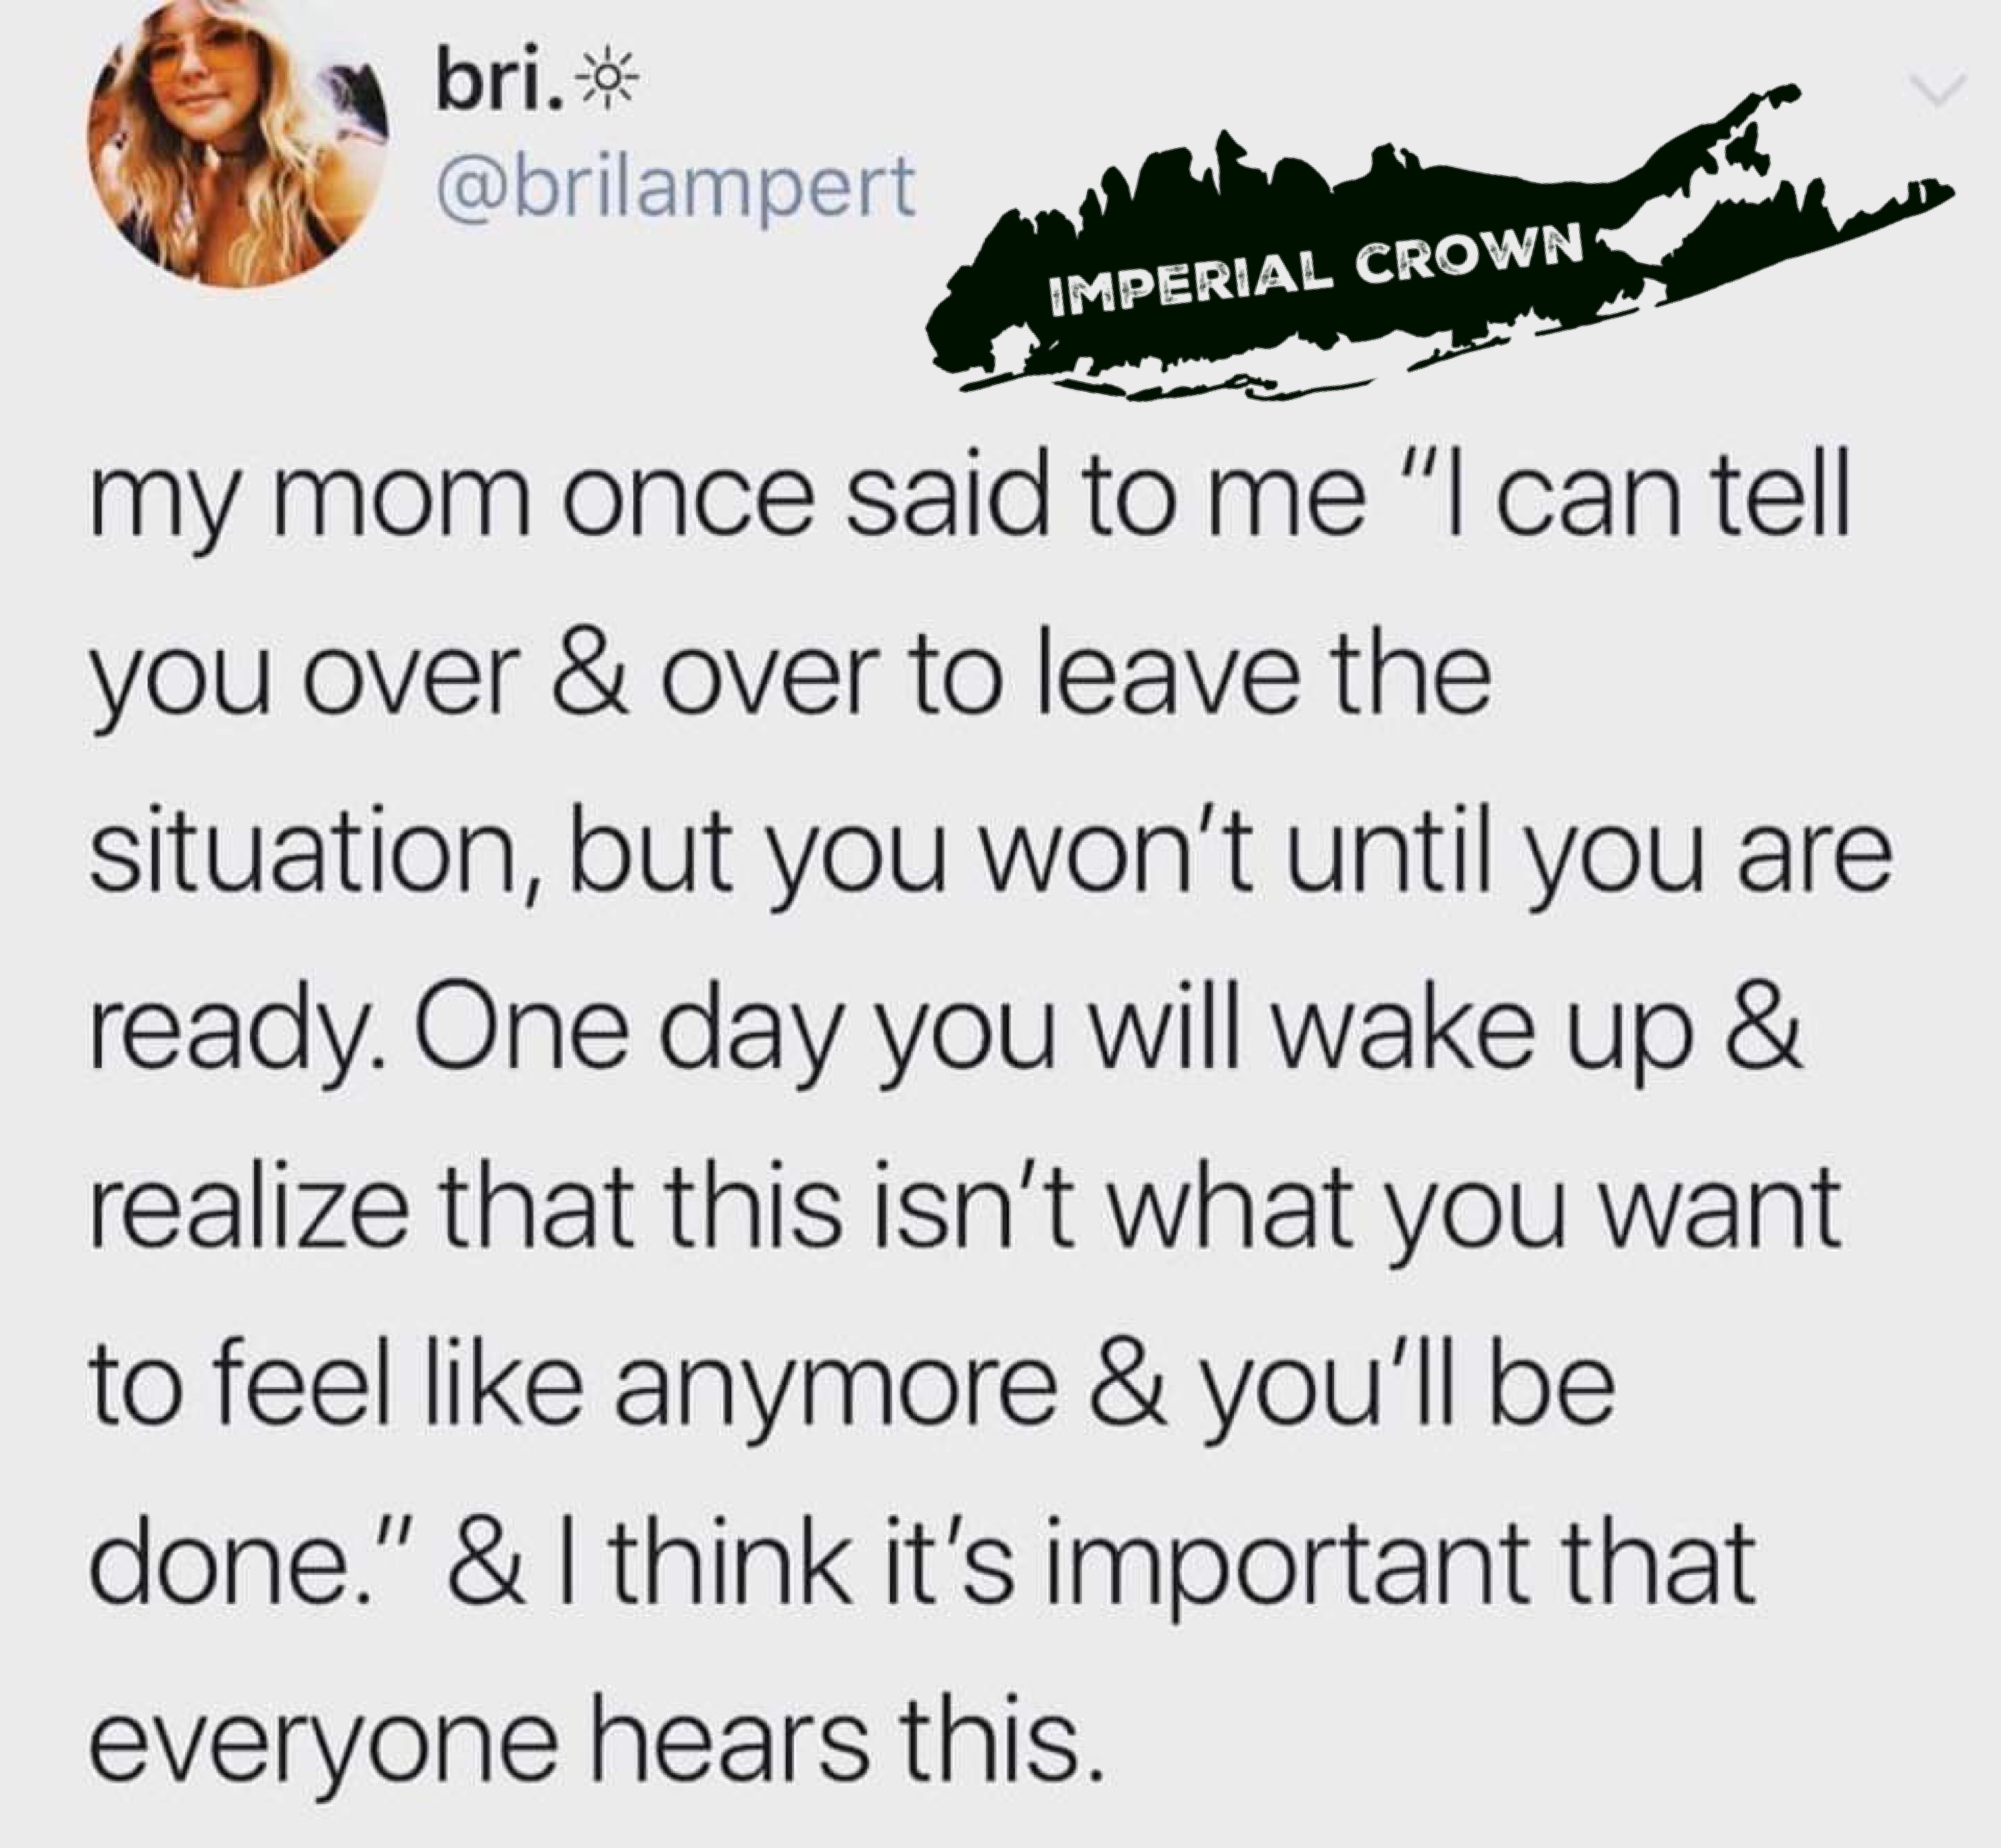 My mom once said to me I can tell you over & over to leave the situation but you won't until you are ready